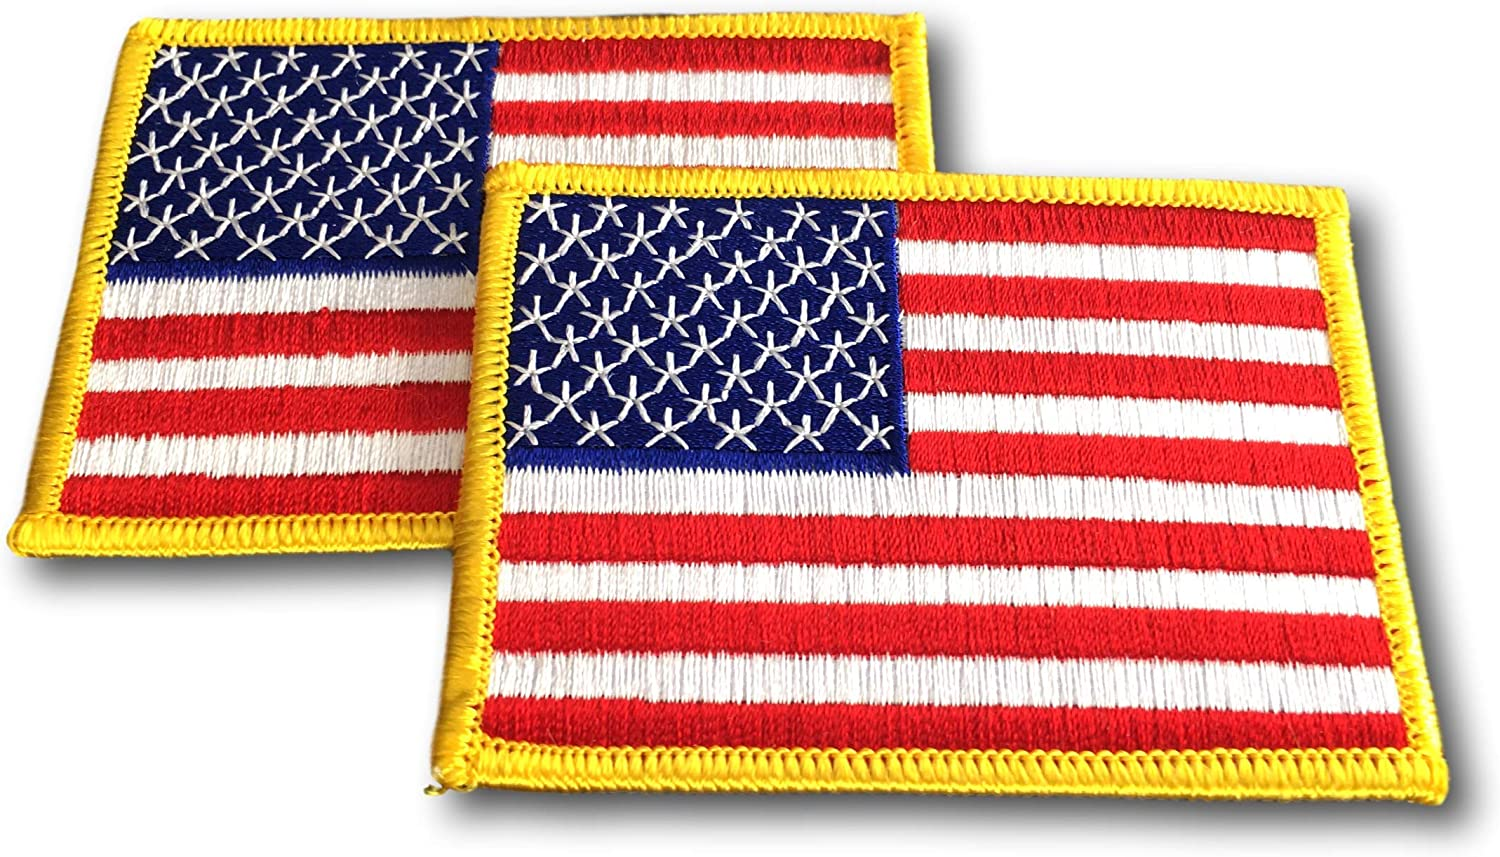 """Black//Red Embroidered Patches 3.5/""""x2.25/"""" iron-on B 25 Pcs USA American Flag"""